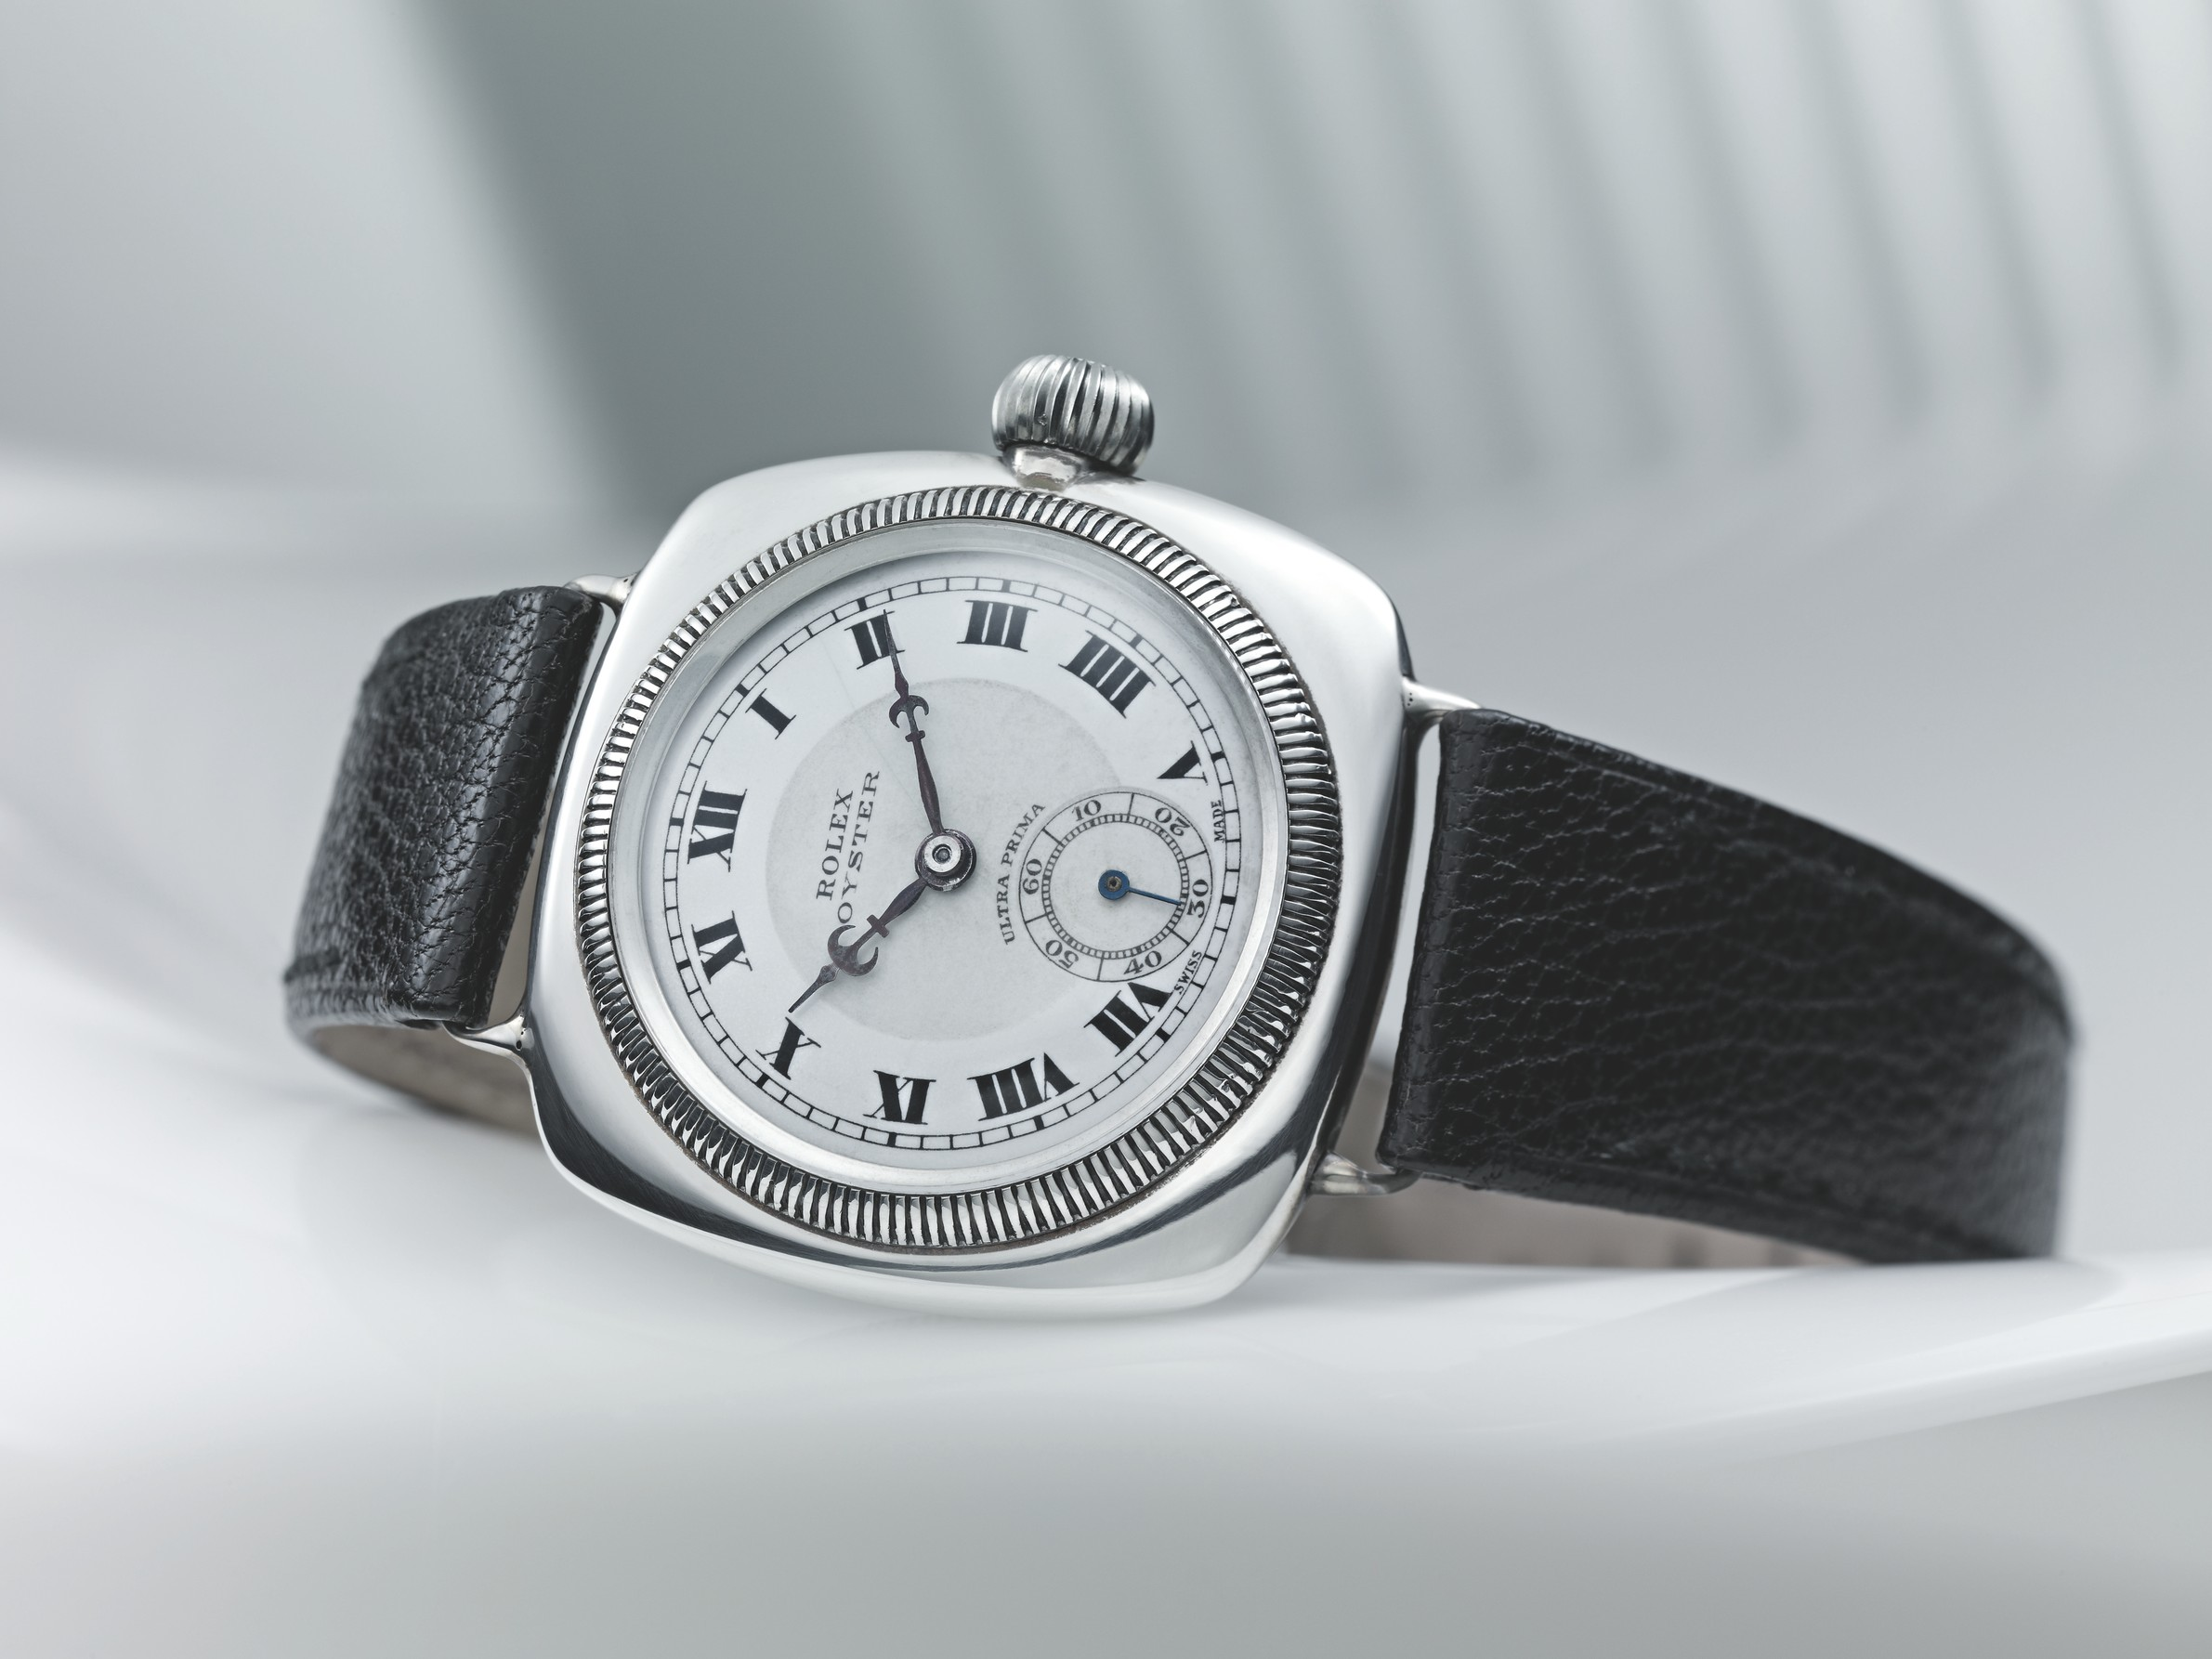 The first rolex oyster in a cushion case from 1926. photo courtesy of rolex.